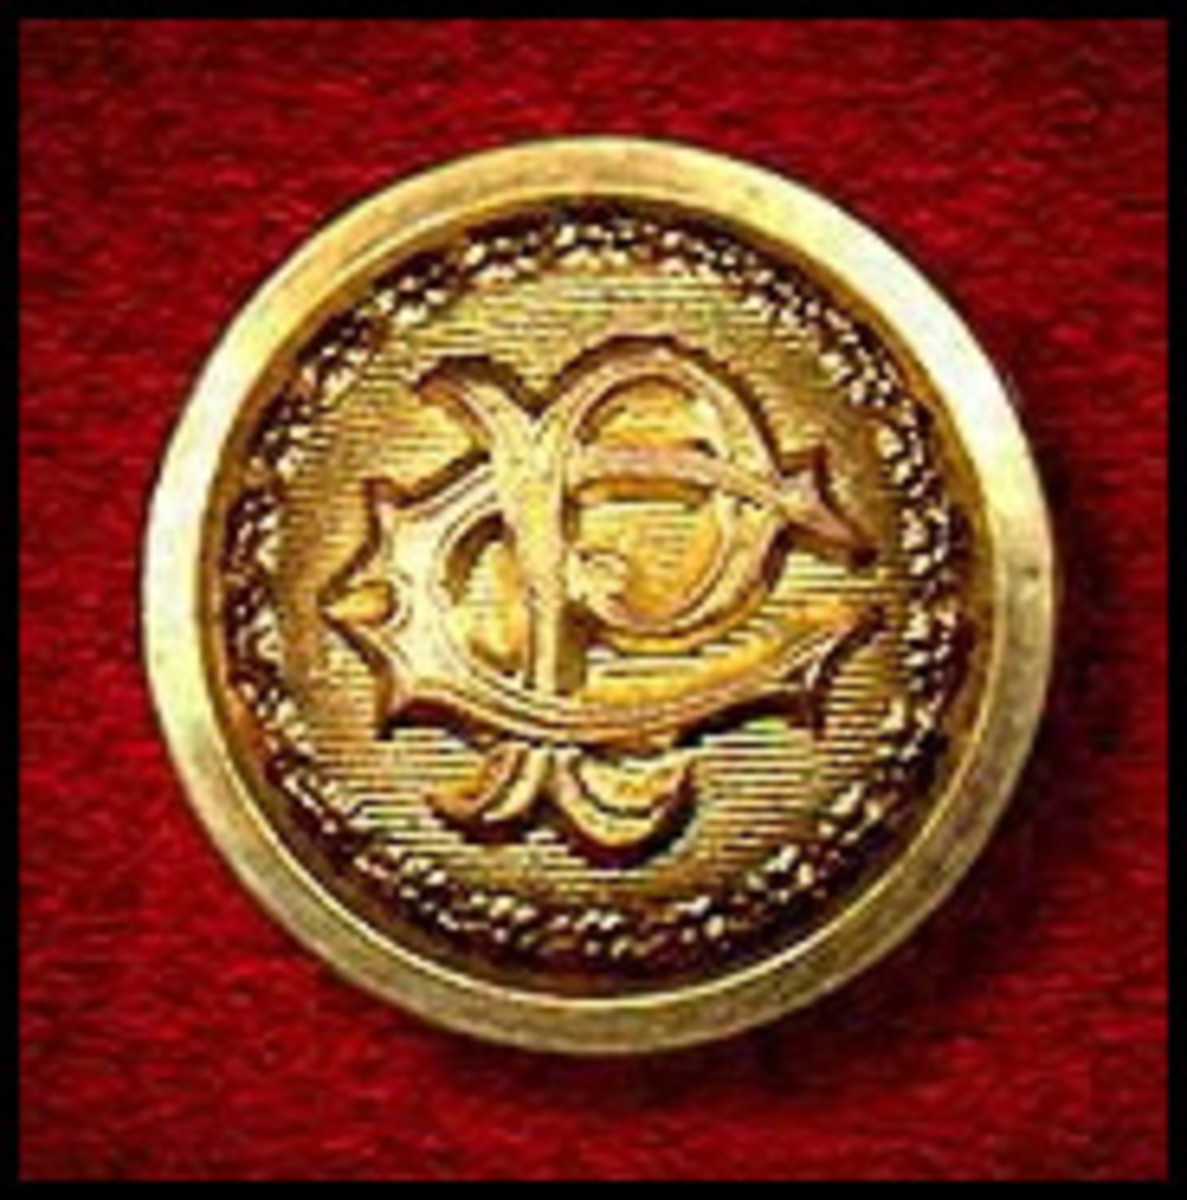 """Central Pacific Railroad """"High Dome"""" Gilt """"Staff"""" Uniform Button, c1867 - The Cooper Collection of American Railroadiana"""" (the uploader's private collection.)"""